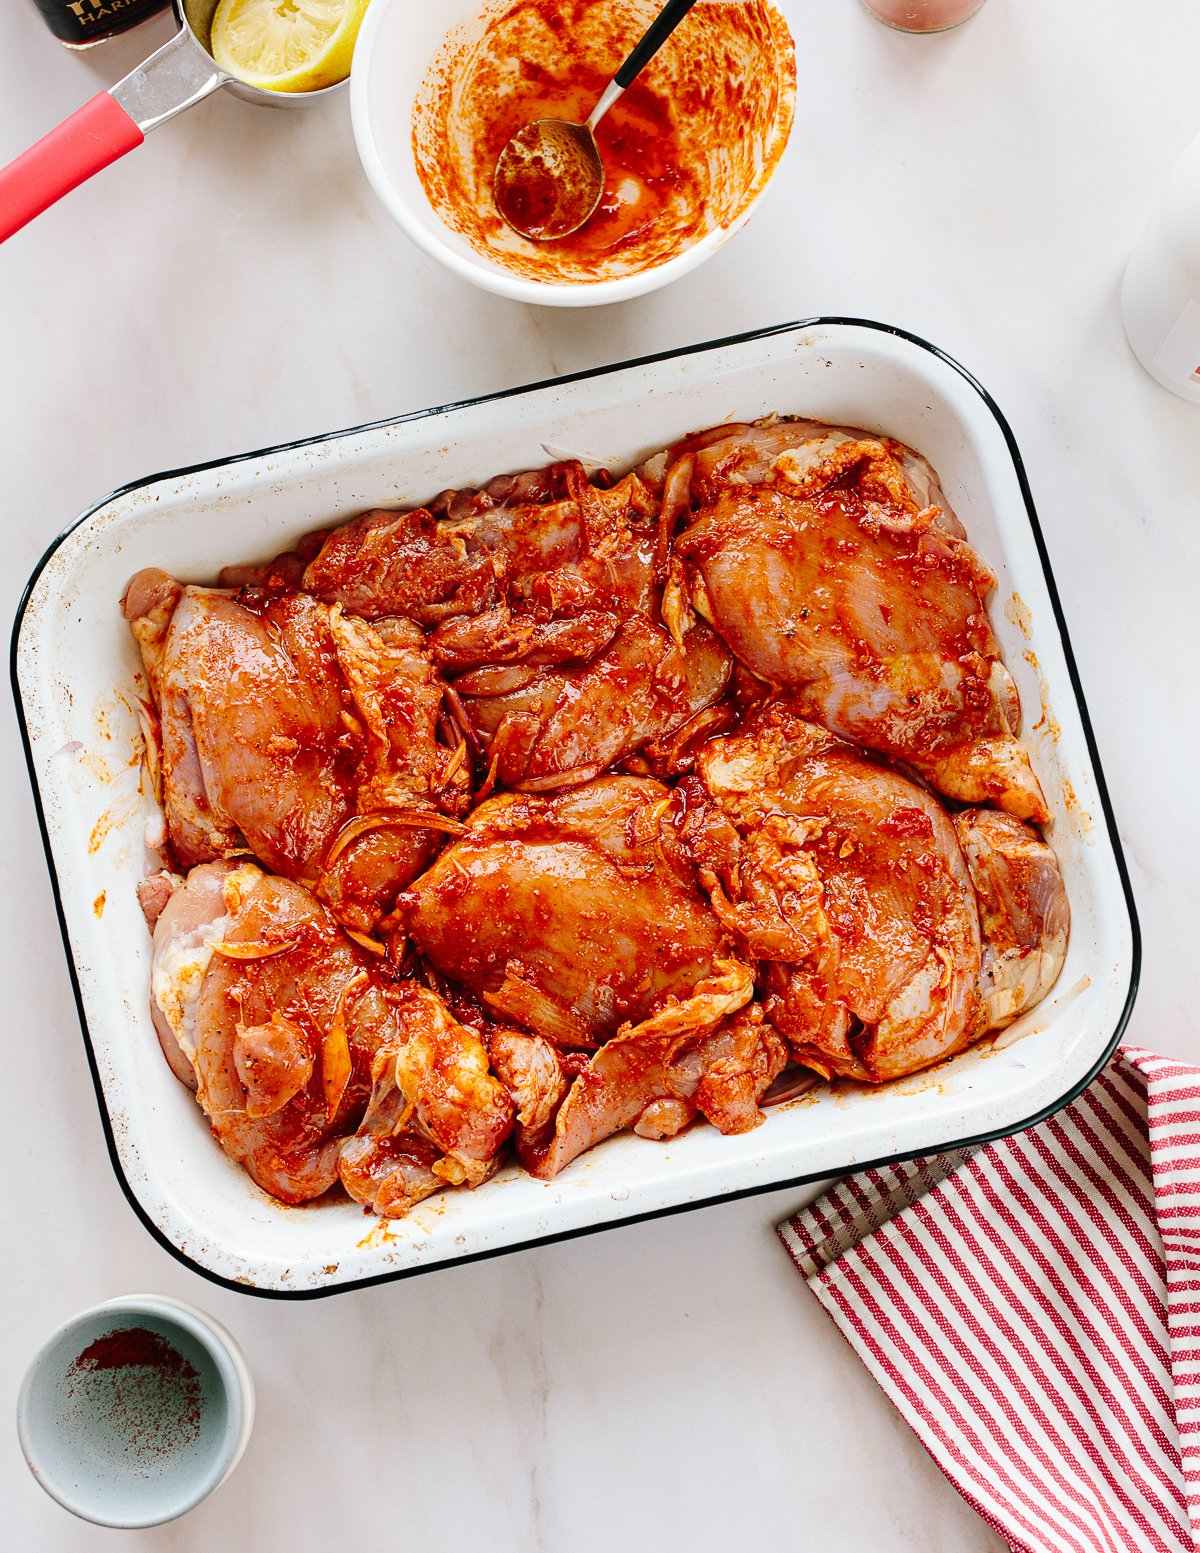 An overhead image of a baking pan with raw chicken thighs in a harissa marinade.